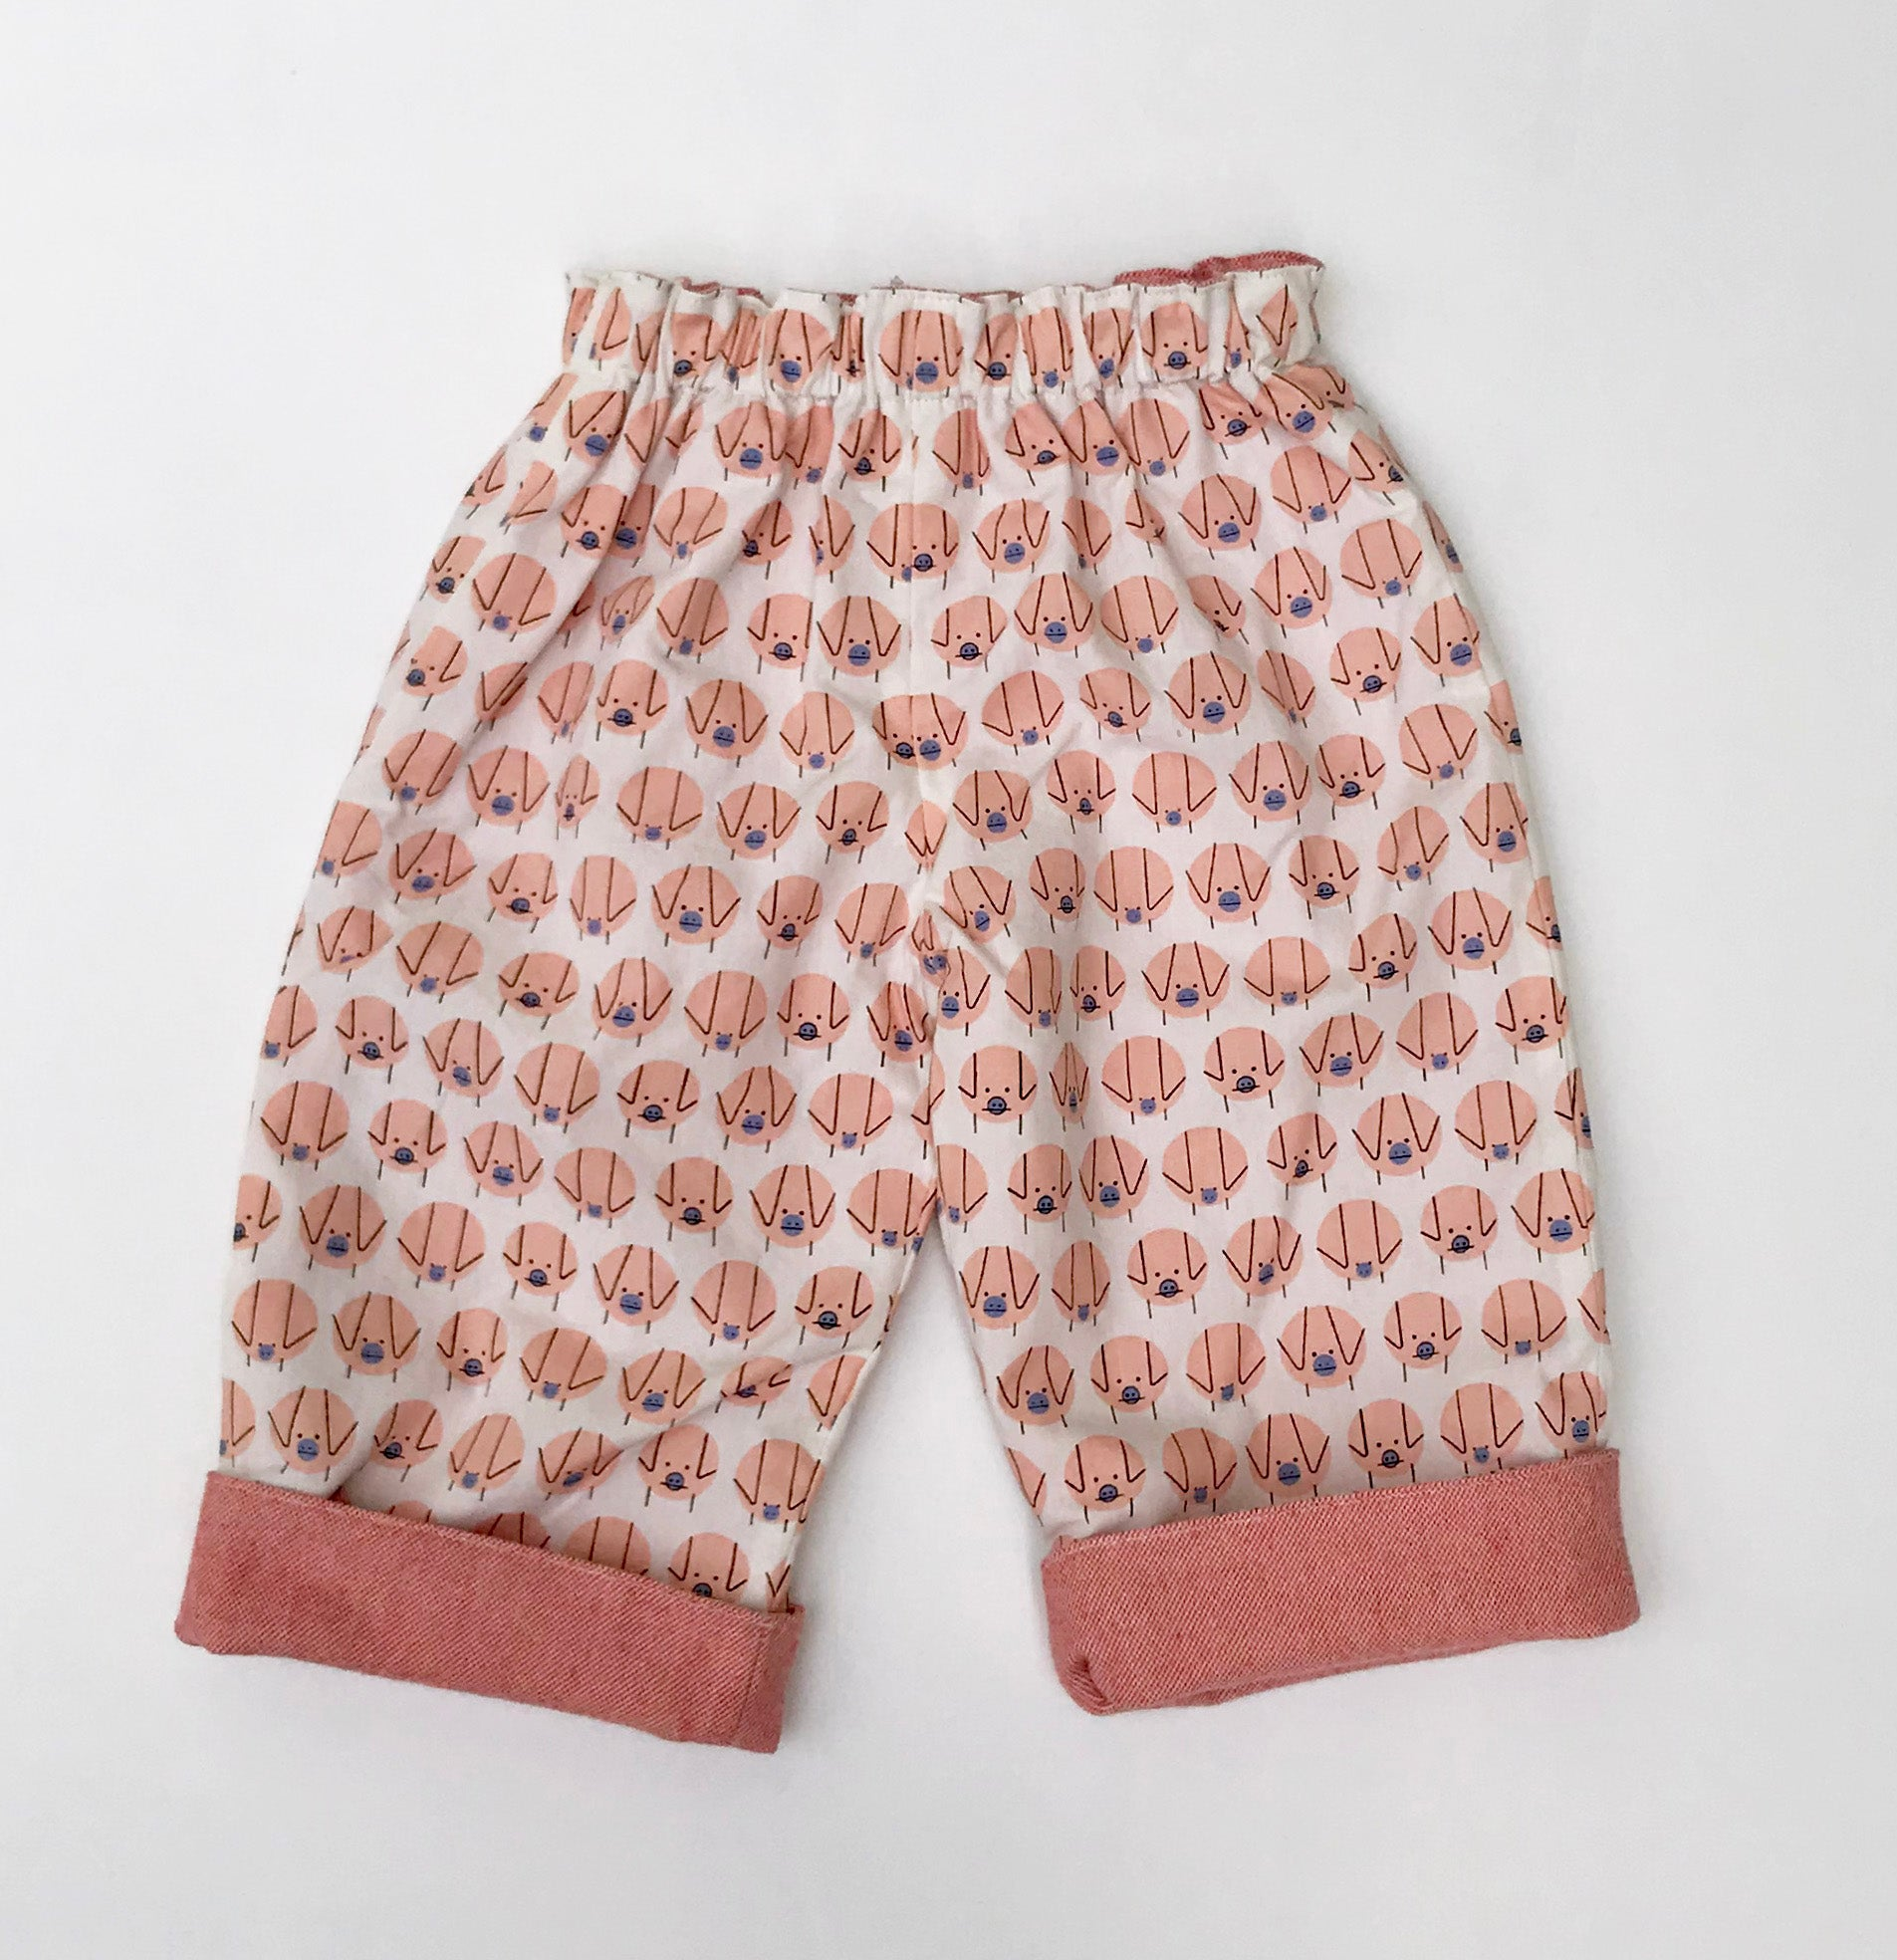 flannel reversible pants in Charley Harper Piggie - little girl Pearl